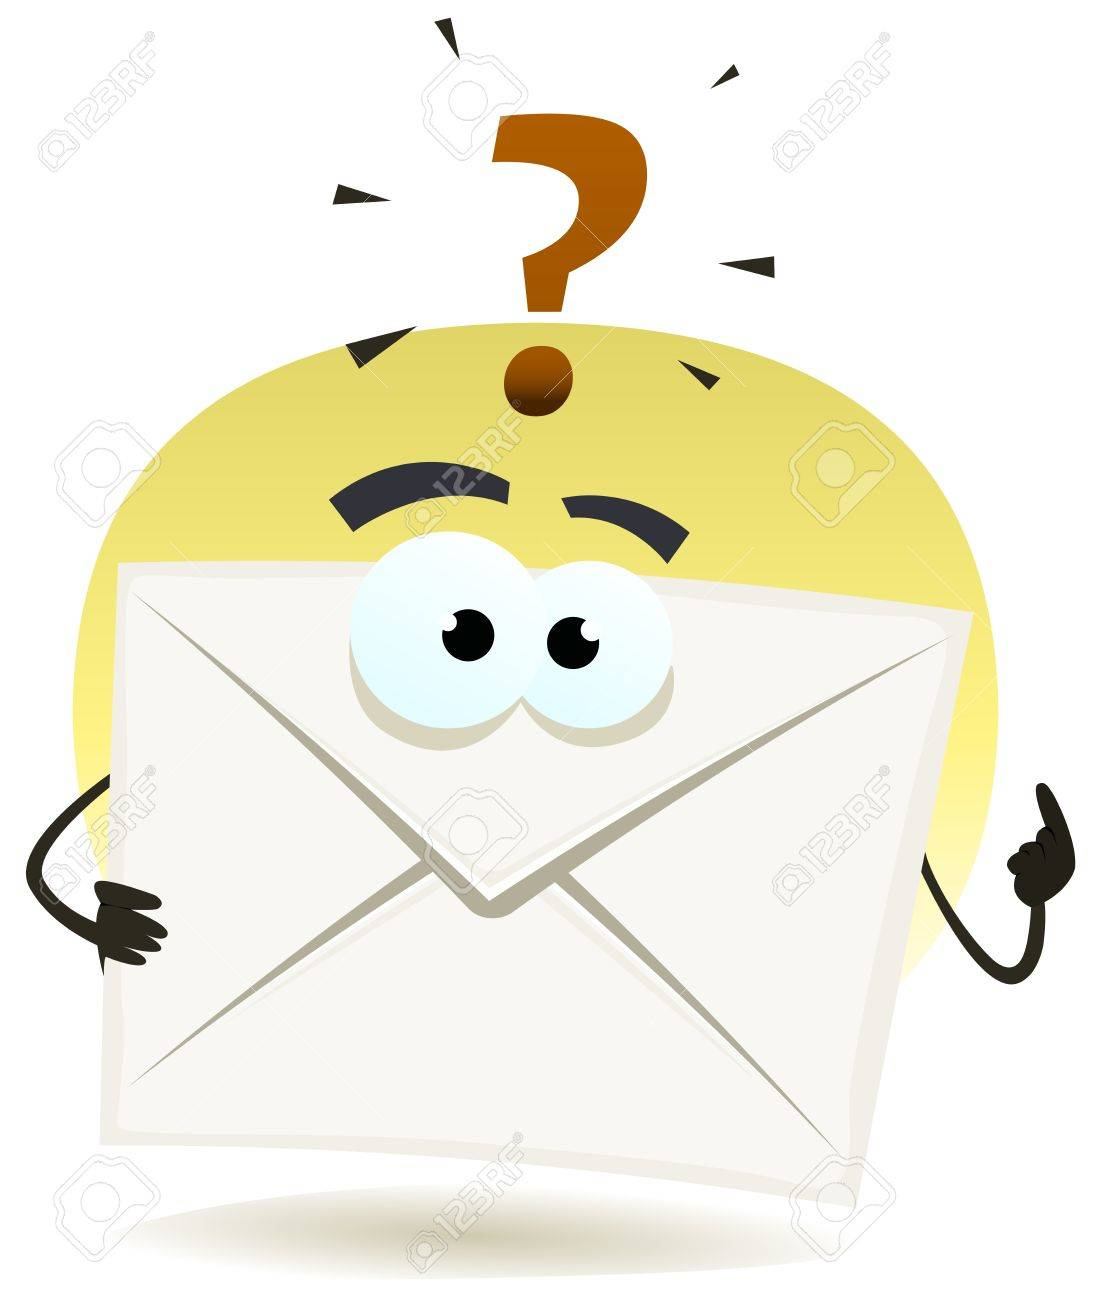 Illustration of a contact email icon envelope character asking question for support Stock Vector - 19049133